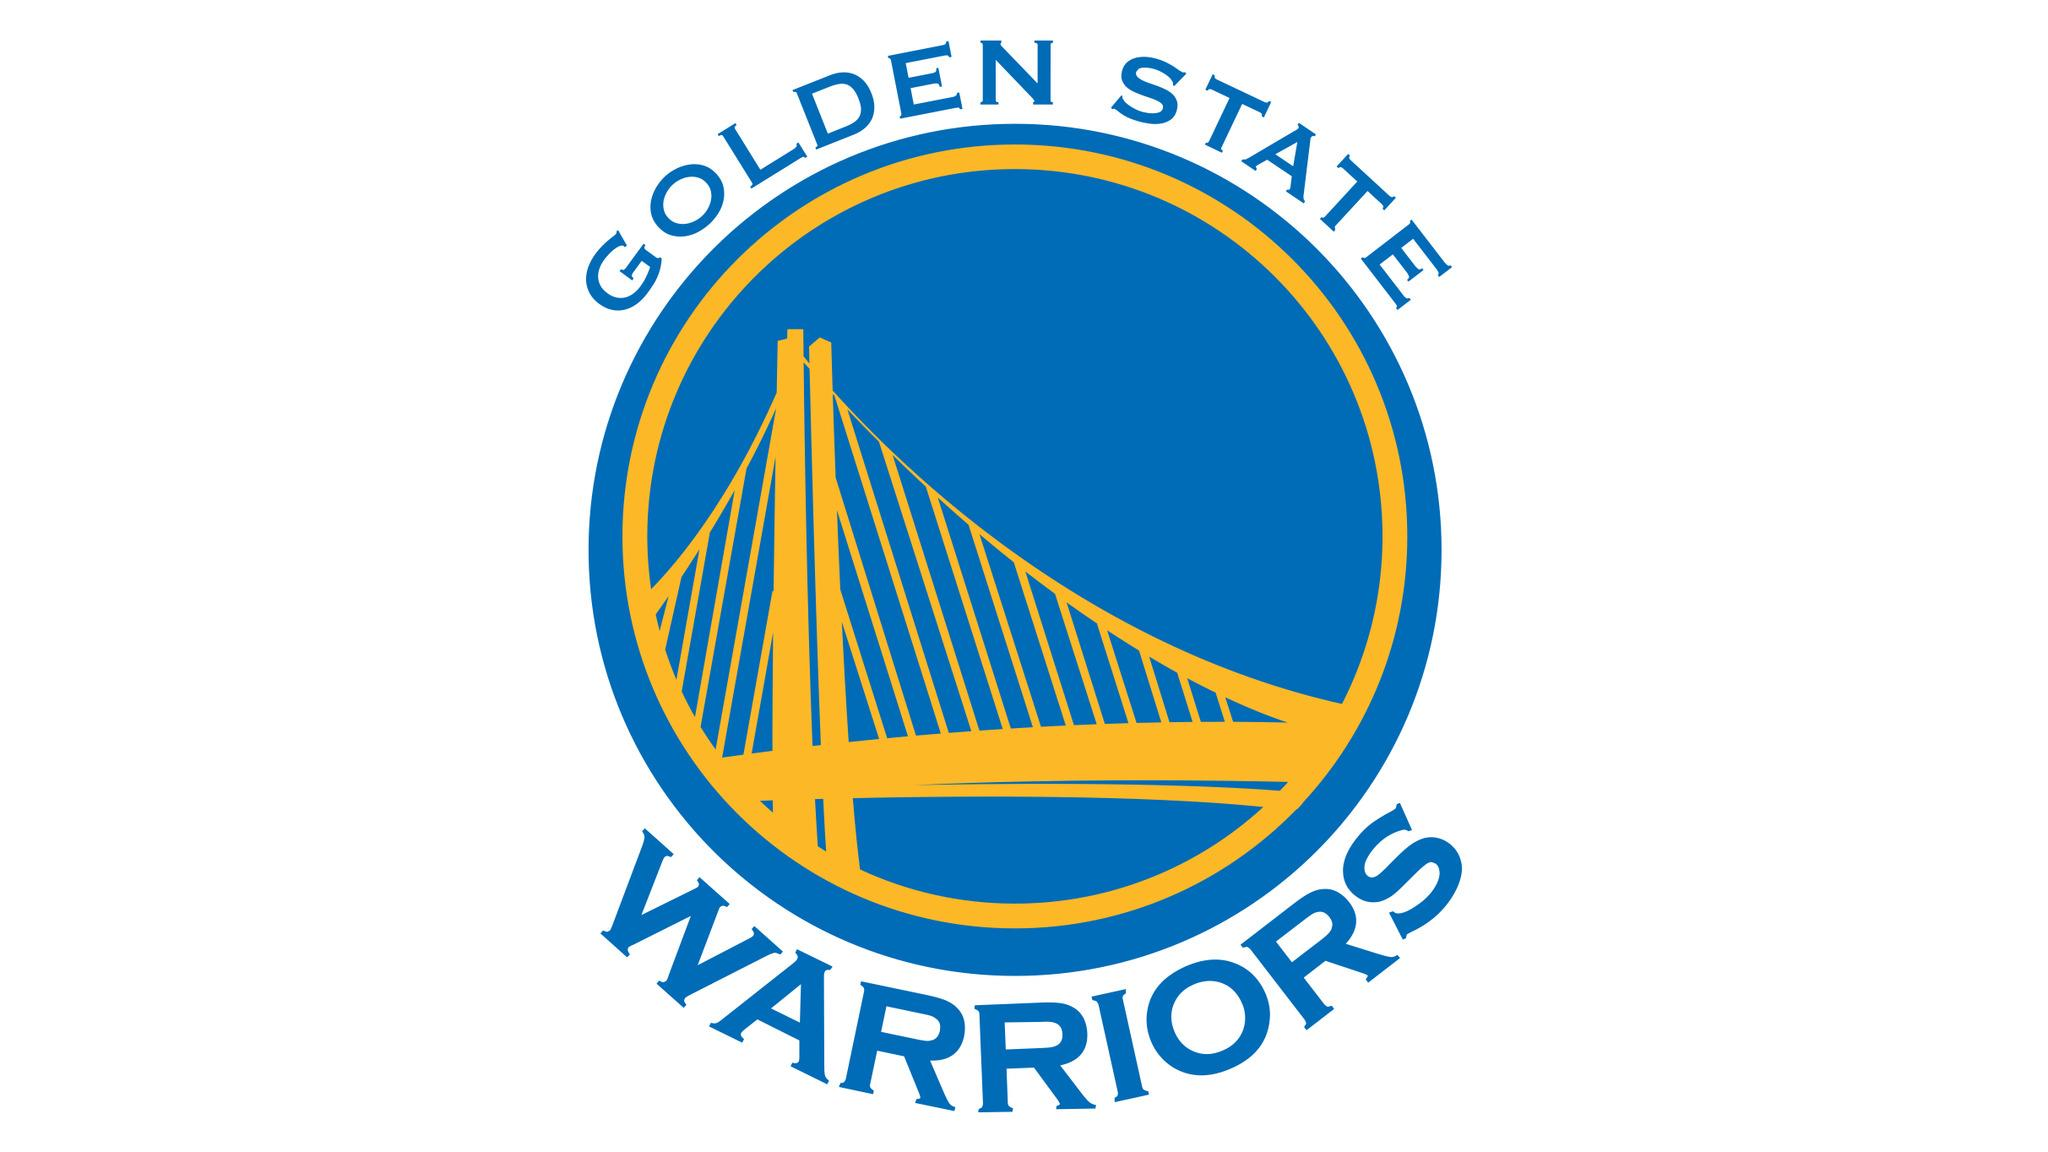 Golden State Warriors vs. Dallas Mavericks - Oakland, CA 94621